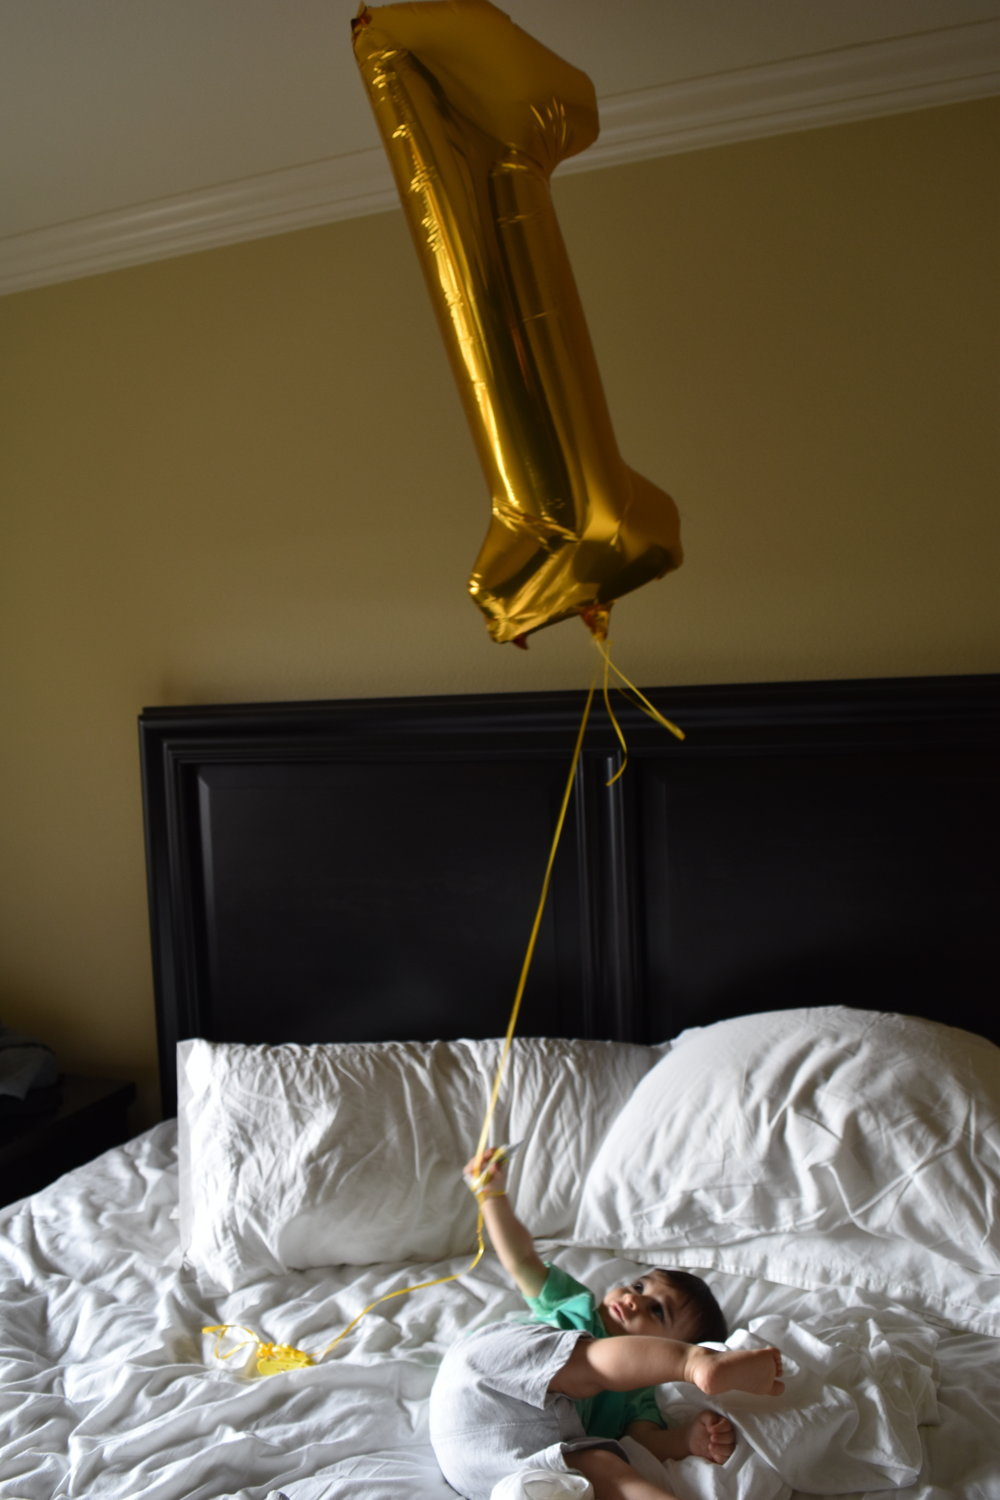 ryan balloon bed 2